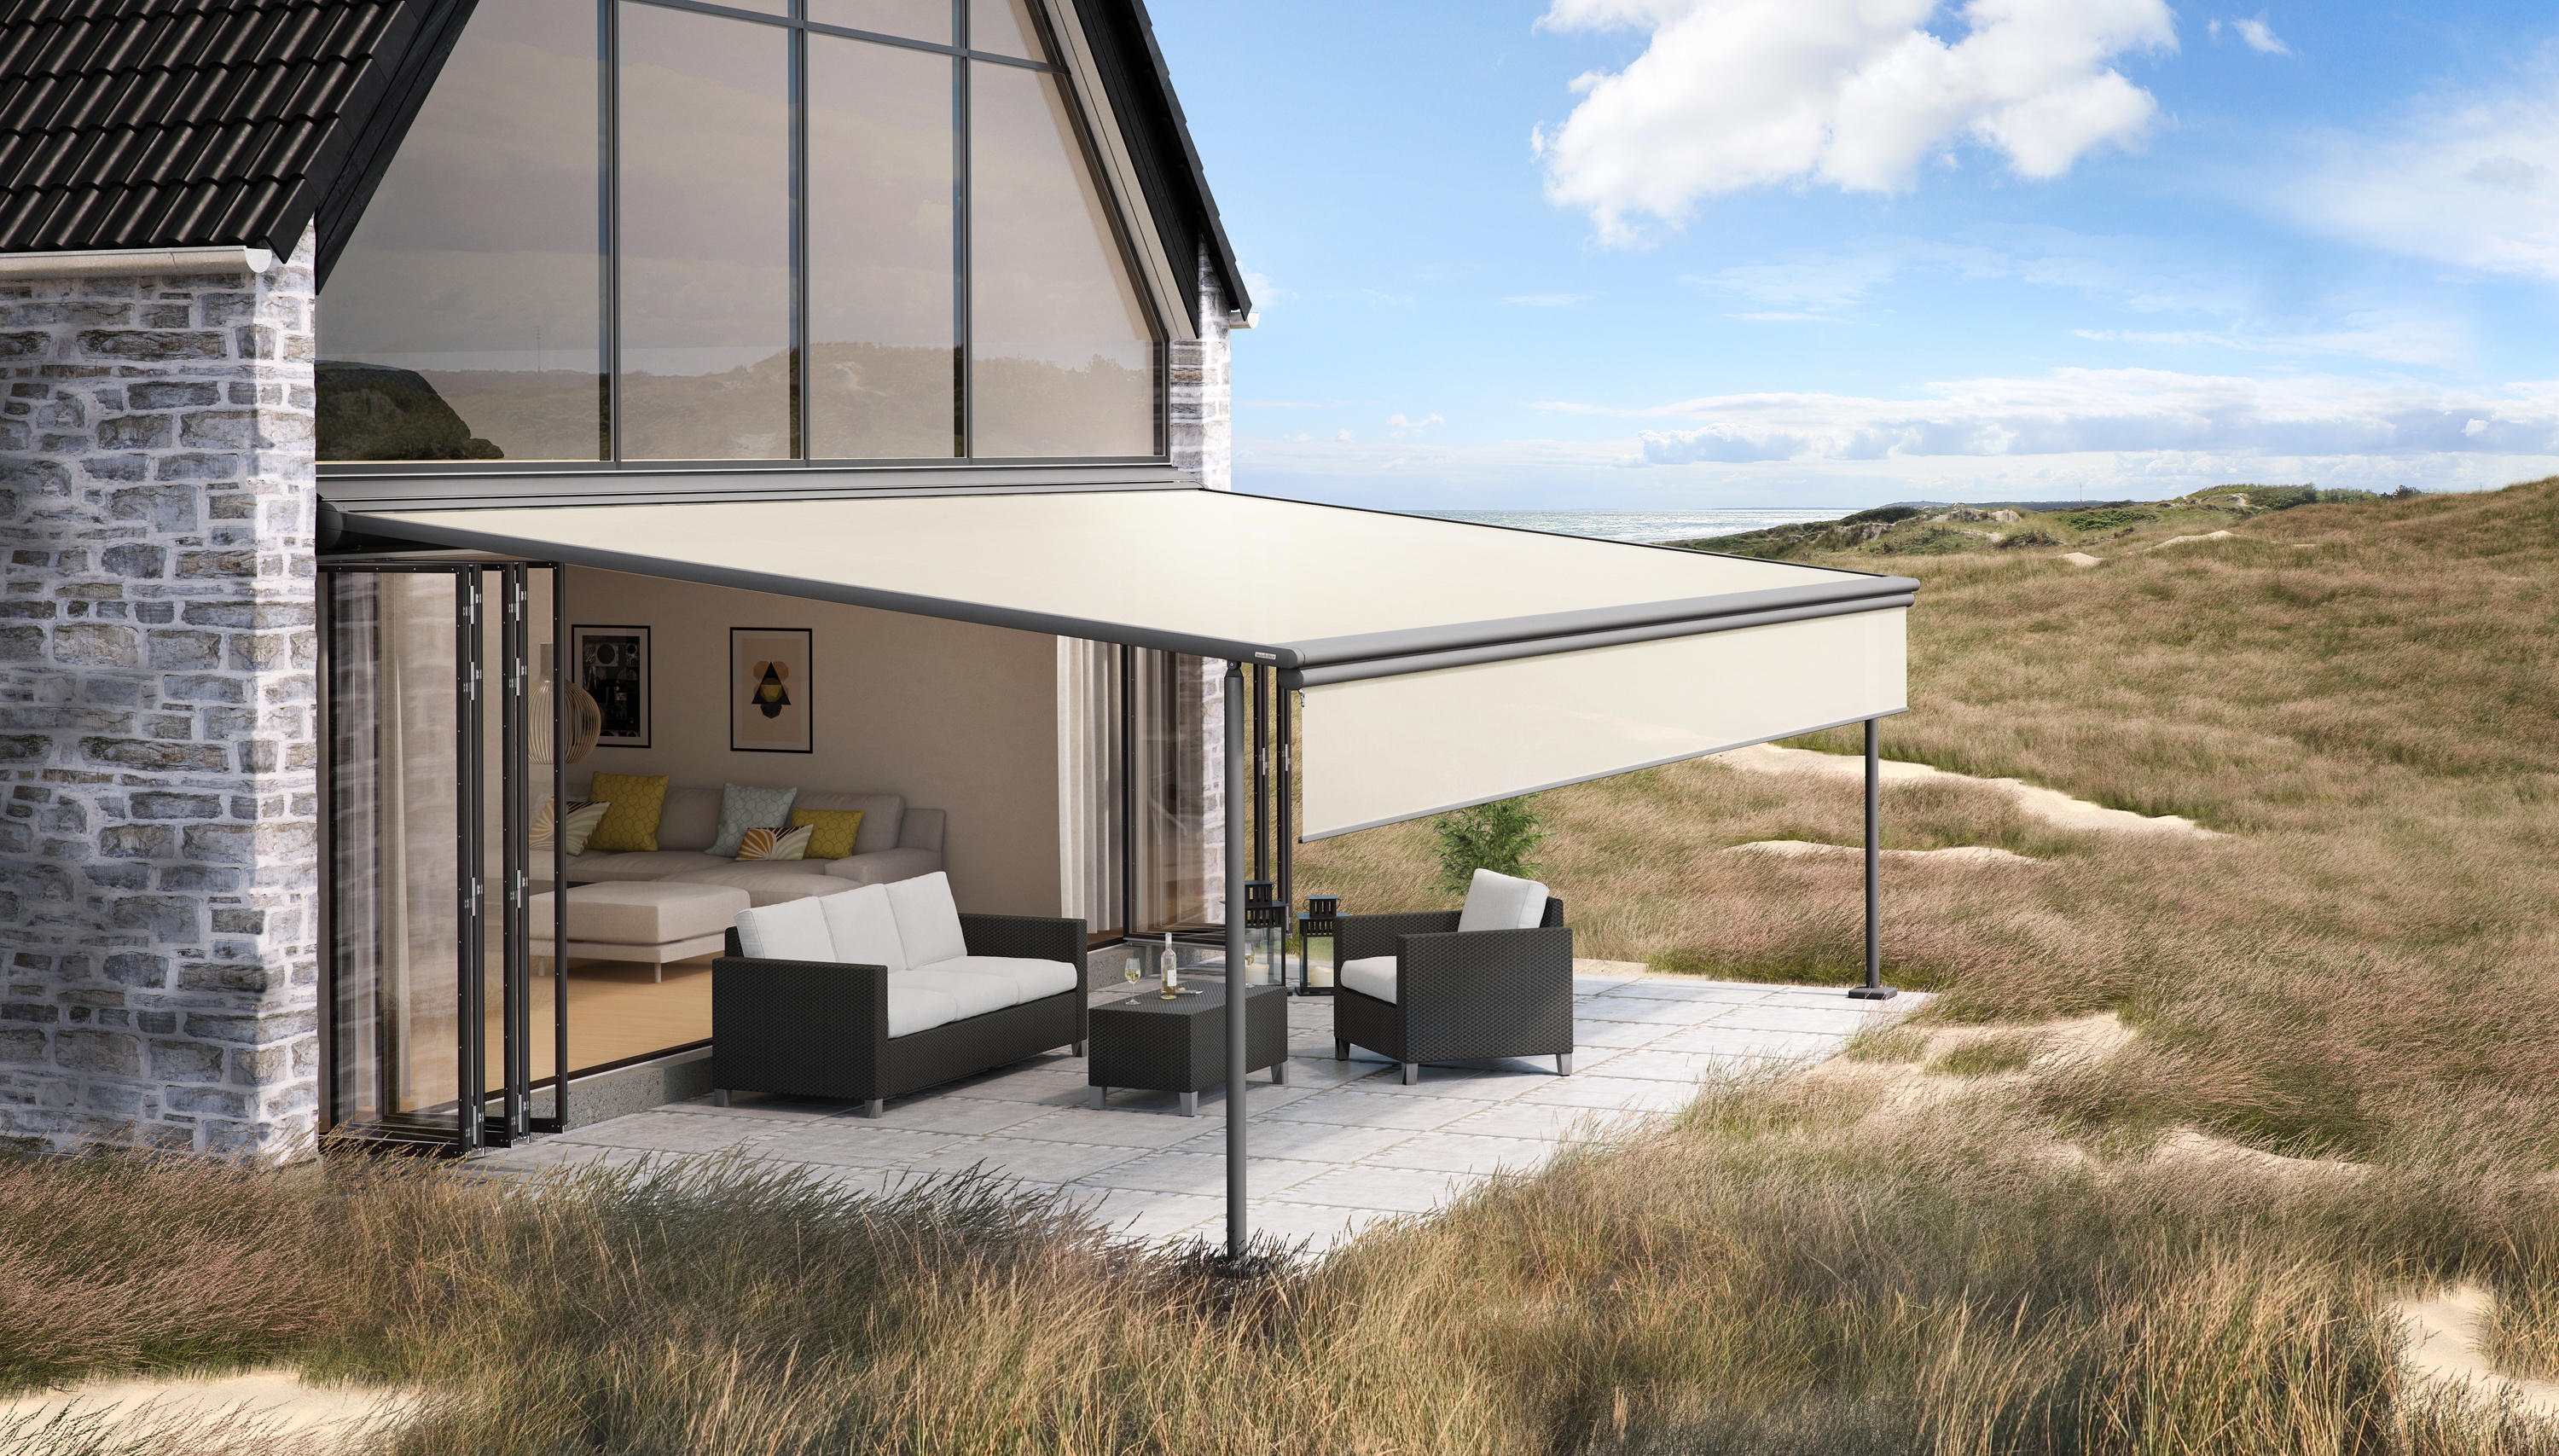 Markilux Pergola Electric Systems From Markilux Architonic